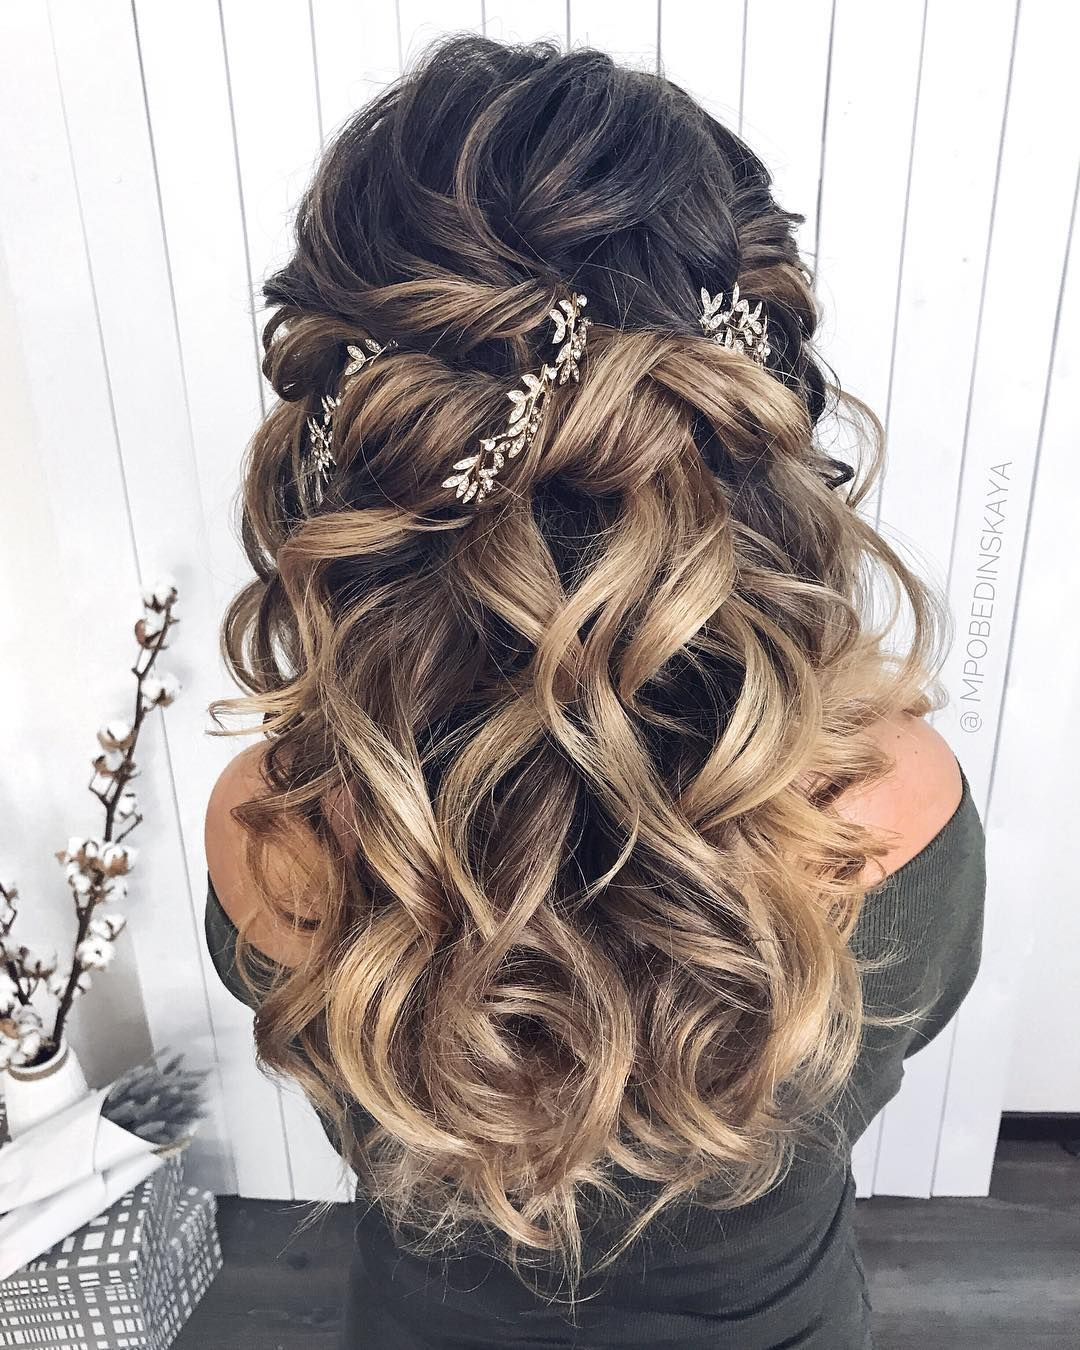 58 Hottest Long Wedding Hairstyles And Updos From